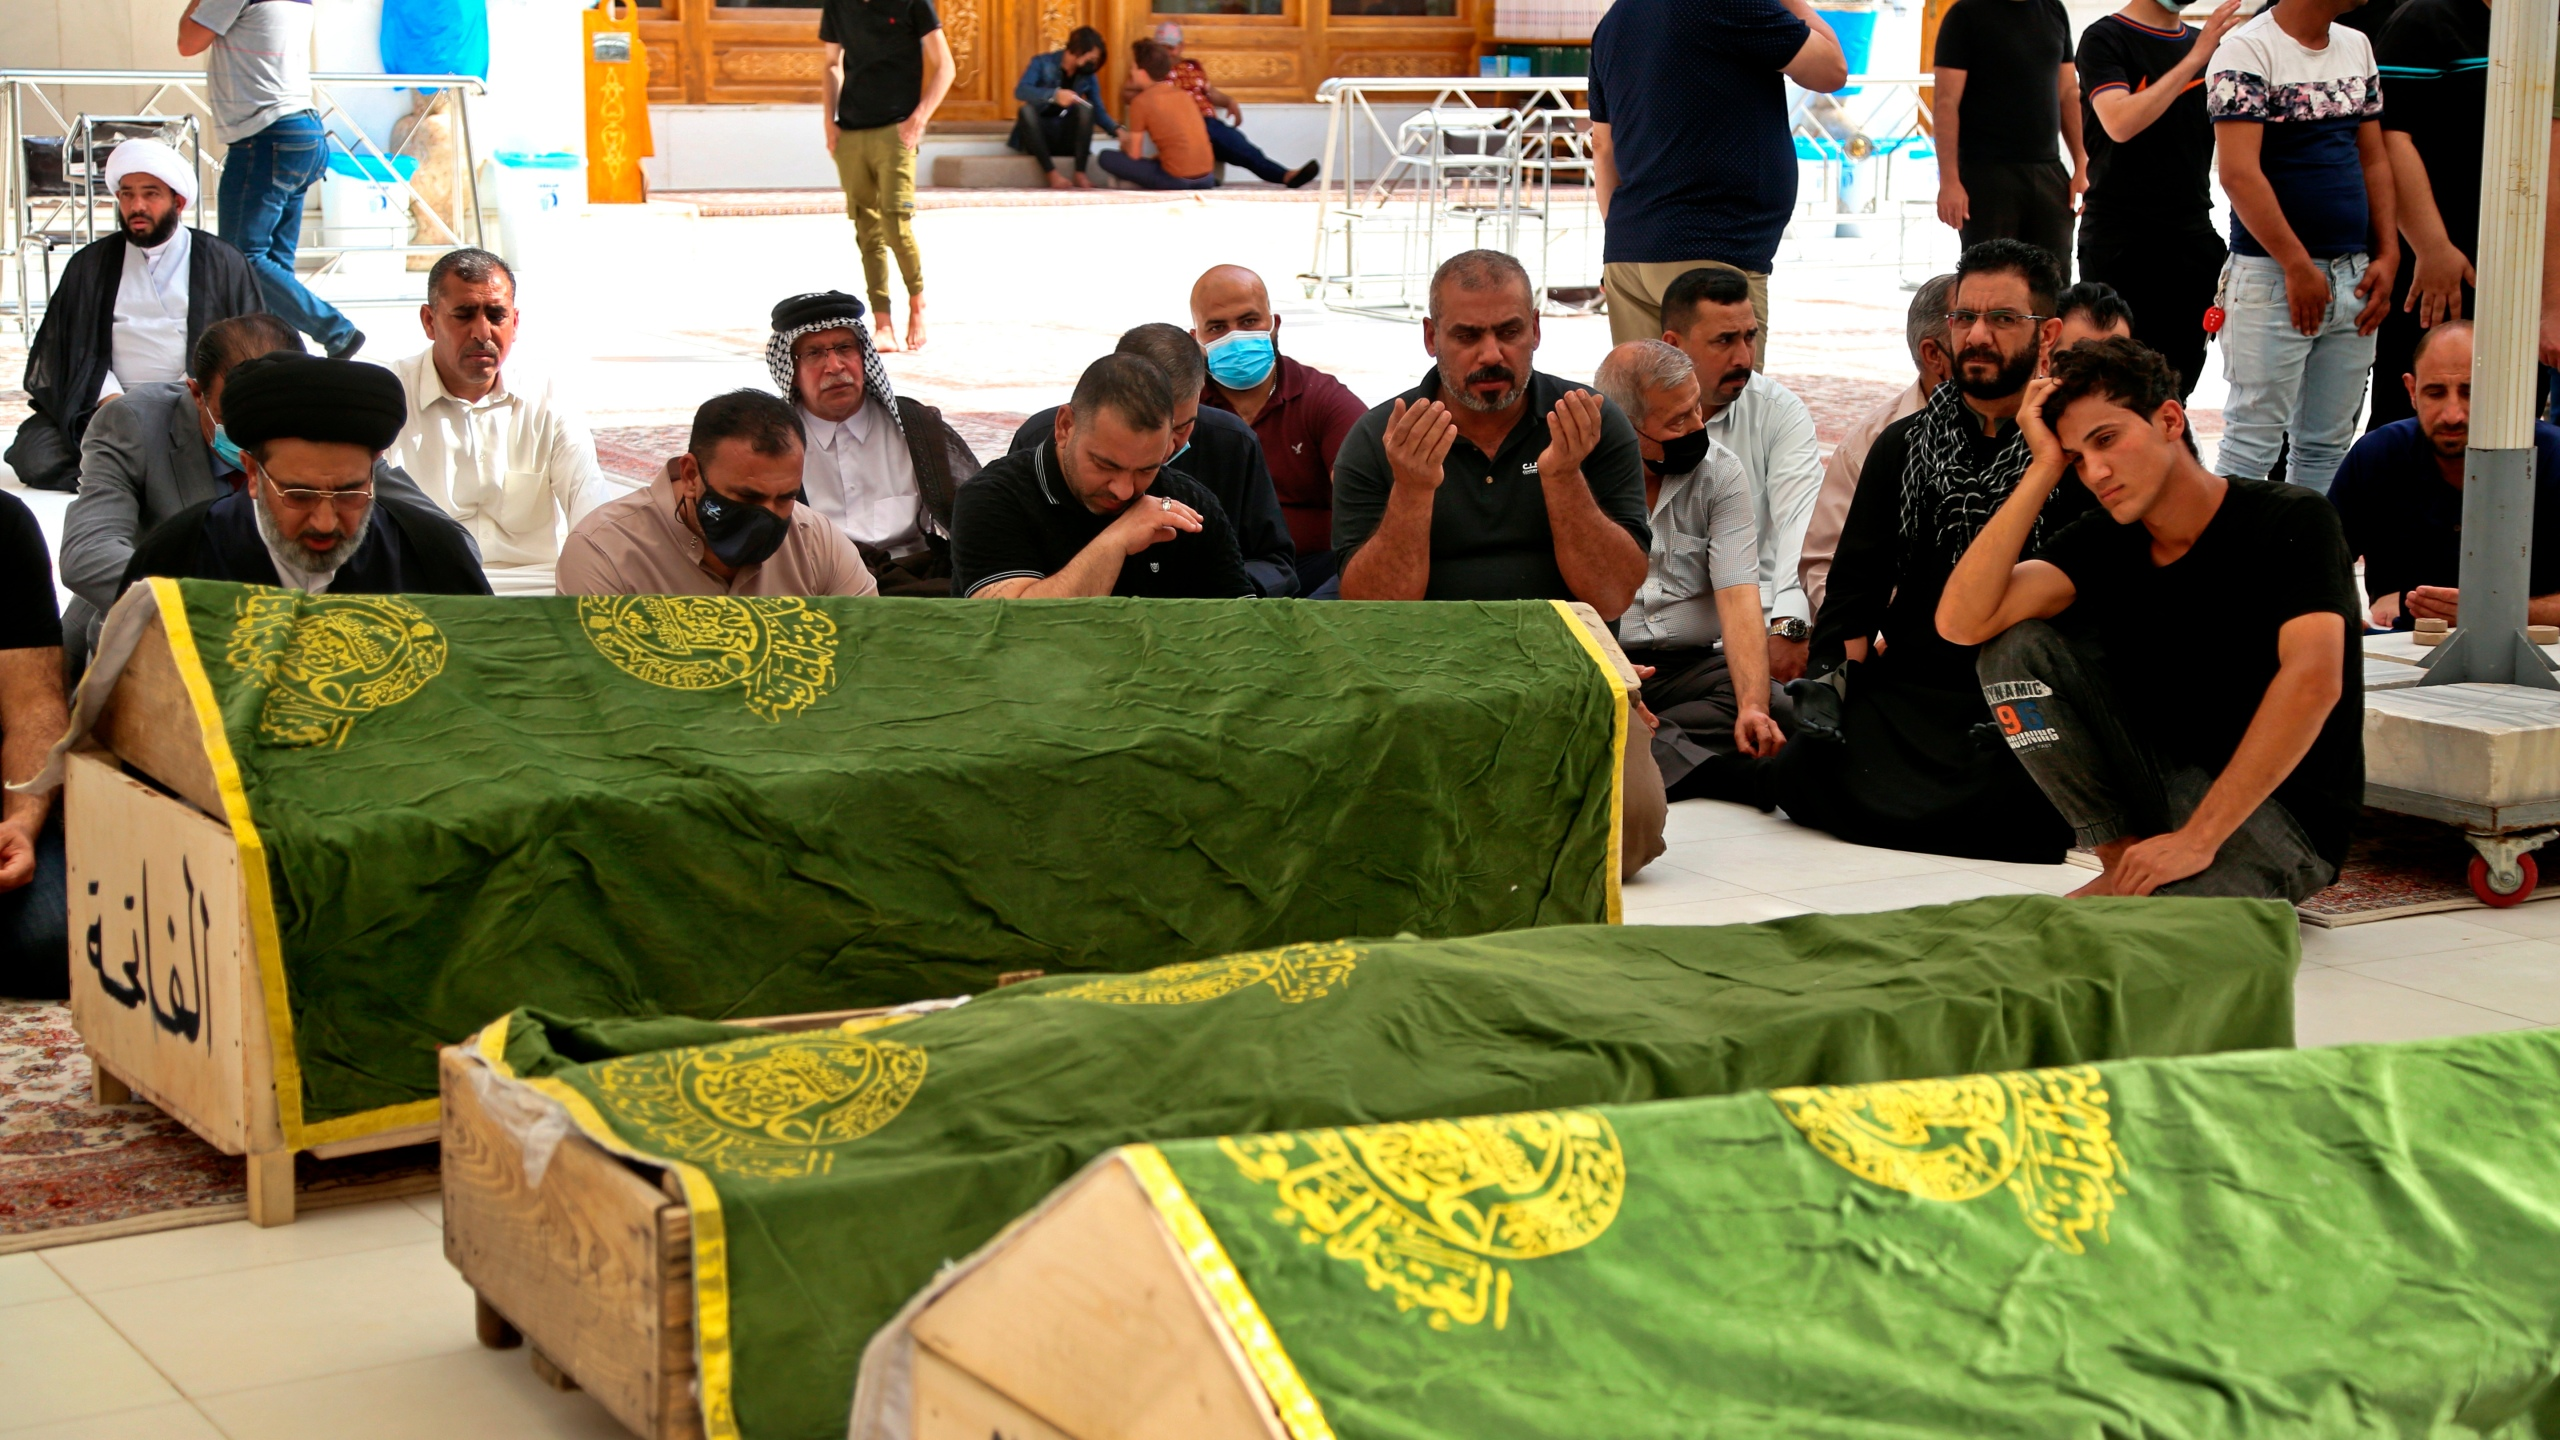 Mourners pray near the coffins of coronavirus patients who were killed in a hospital fire in Iraq, April 25, 2021. (AP Photo/Anmar Khalil)